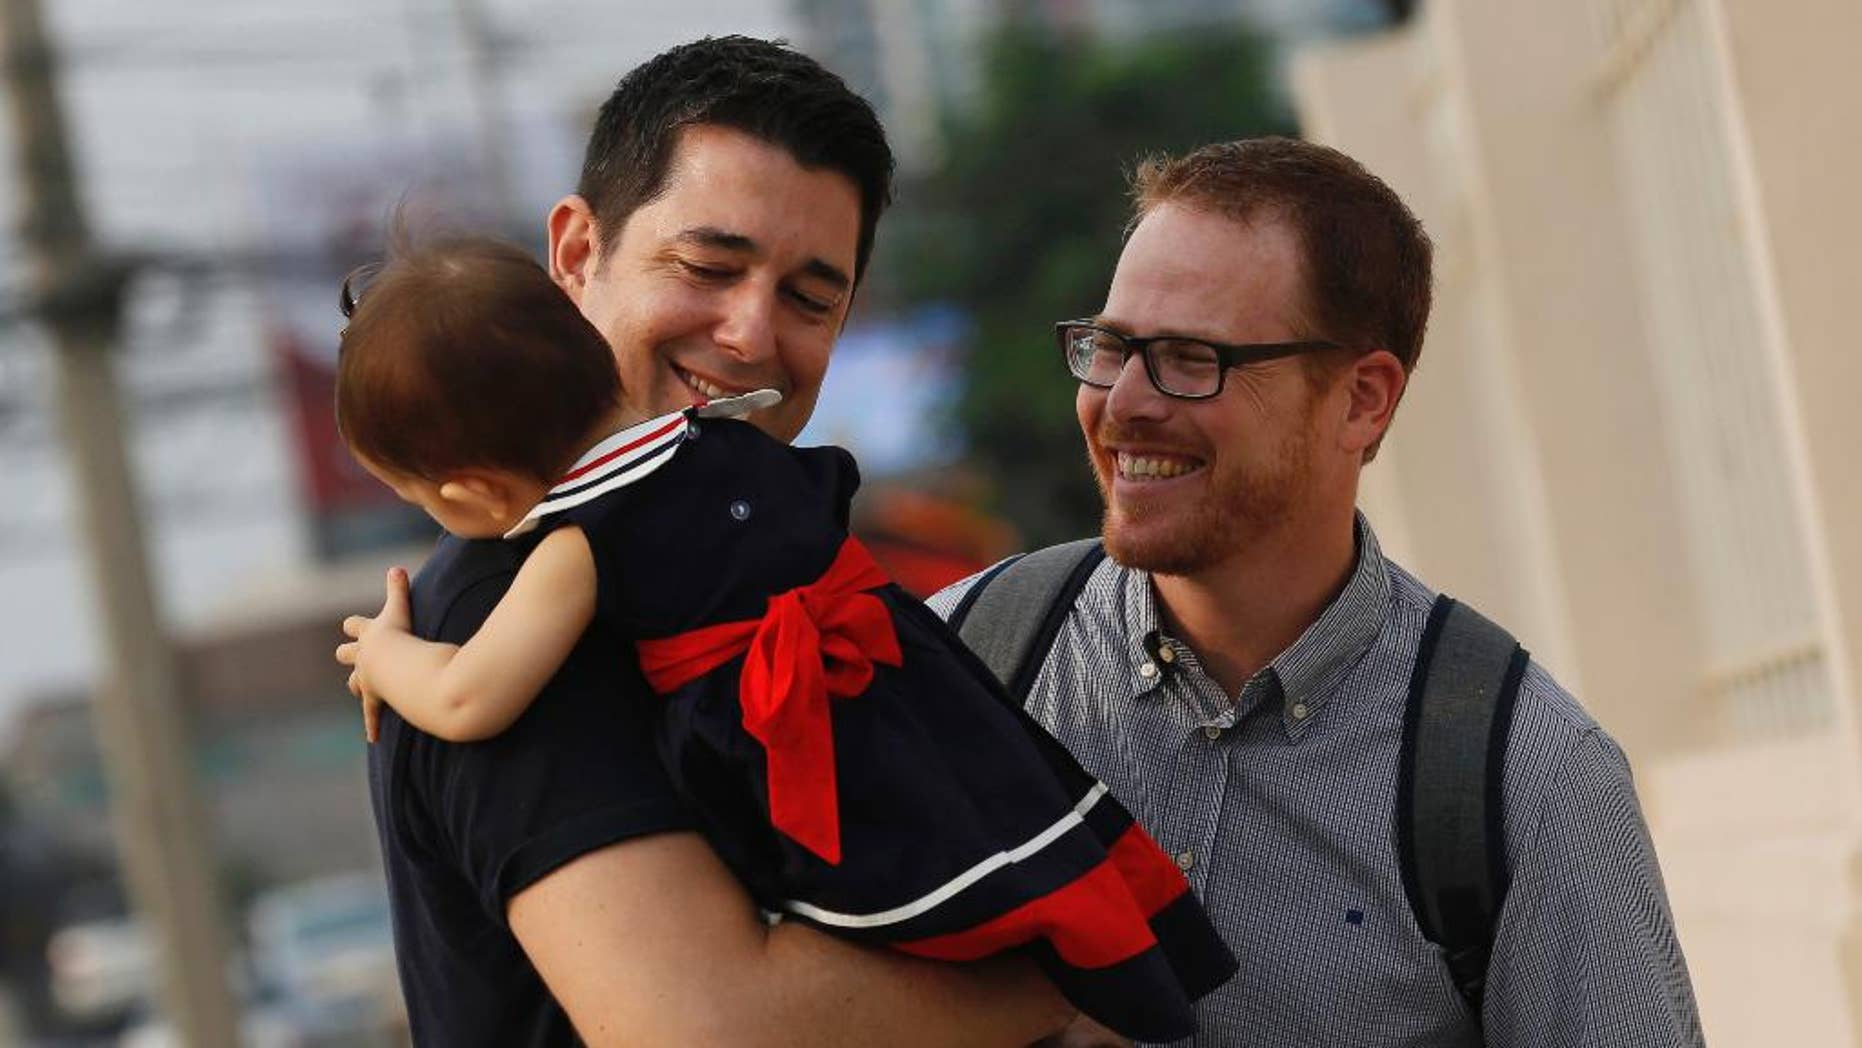 Manuel Santos, left, and Gordon Lake with their baby, Carmen, in March.